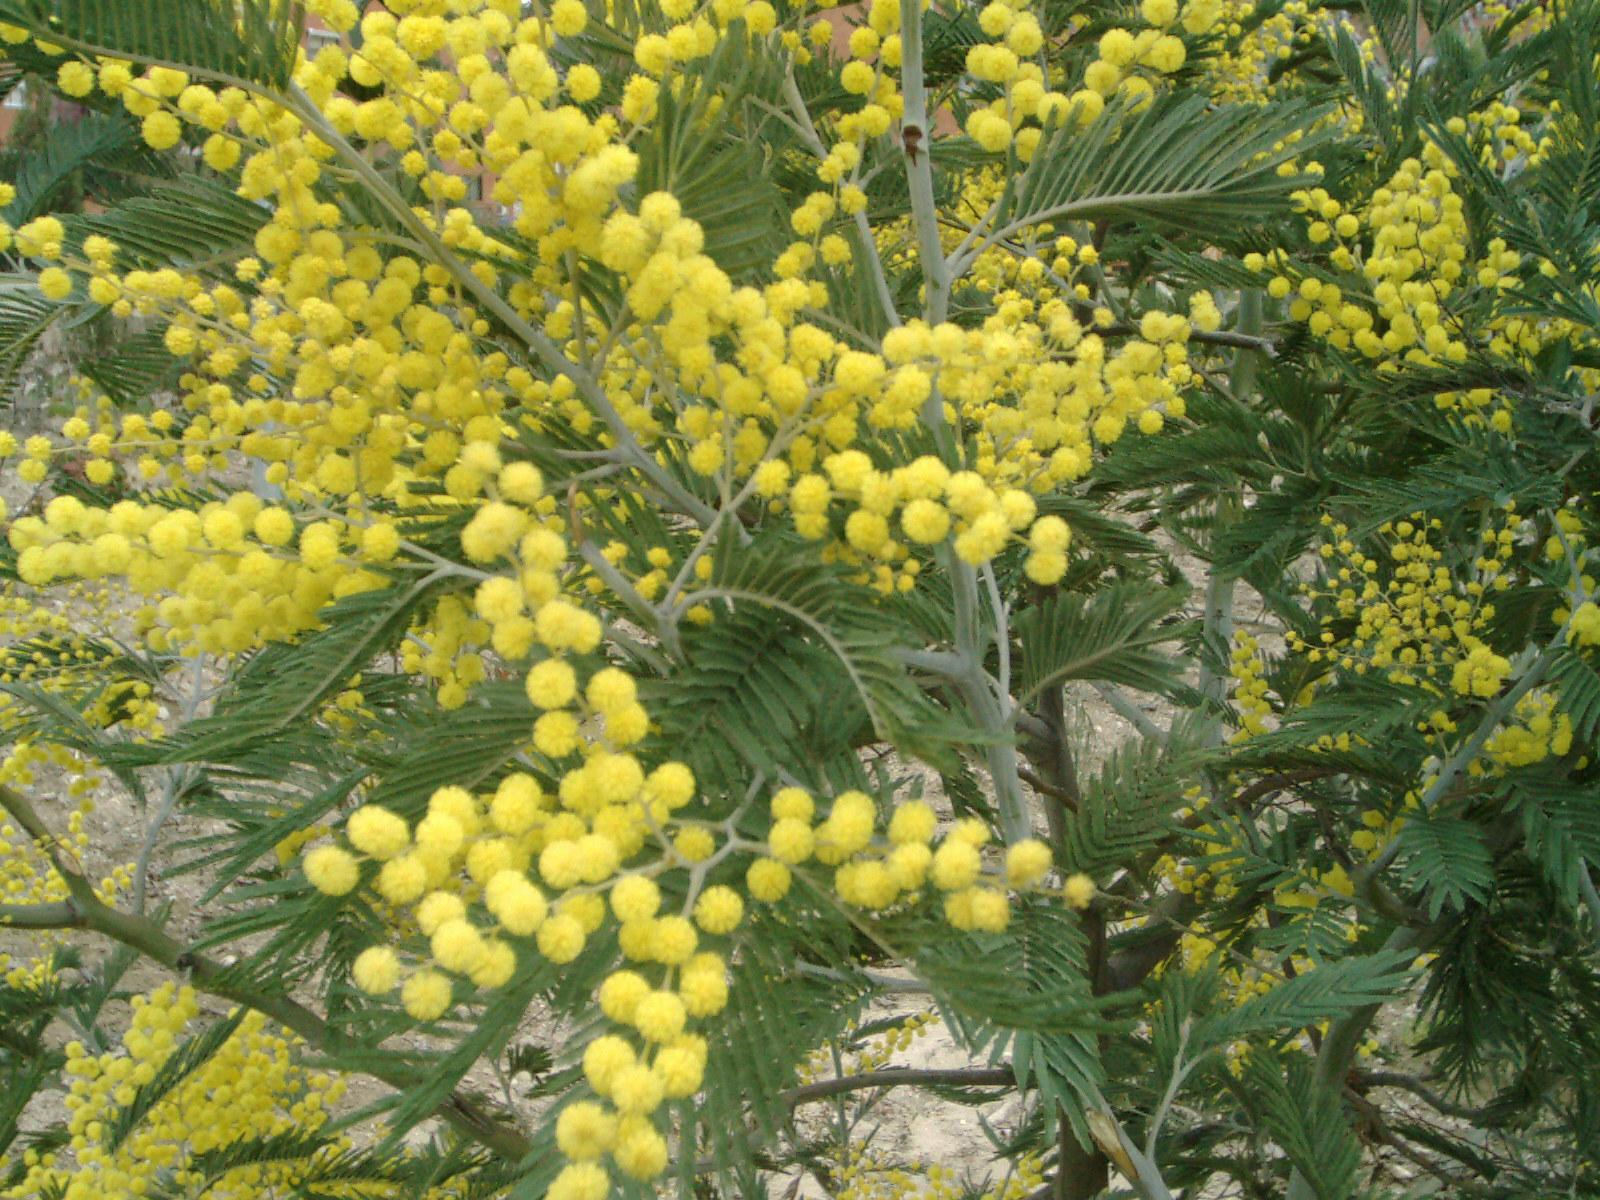 File:Acacia dealbata.jpg - Wikipedia, the free encyclopedia